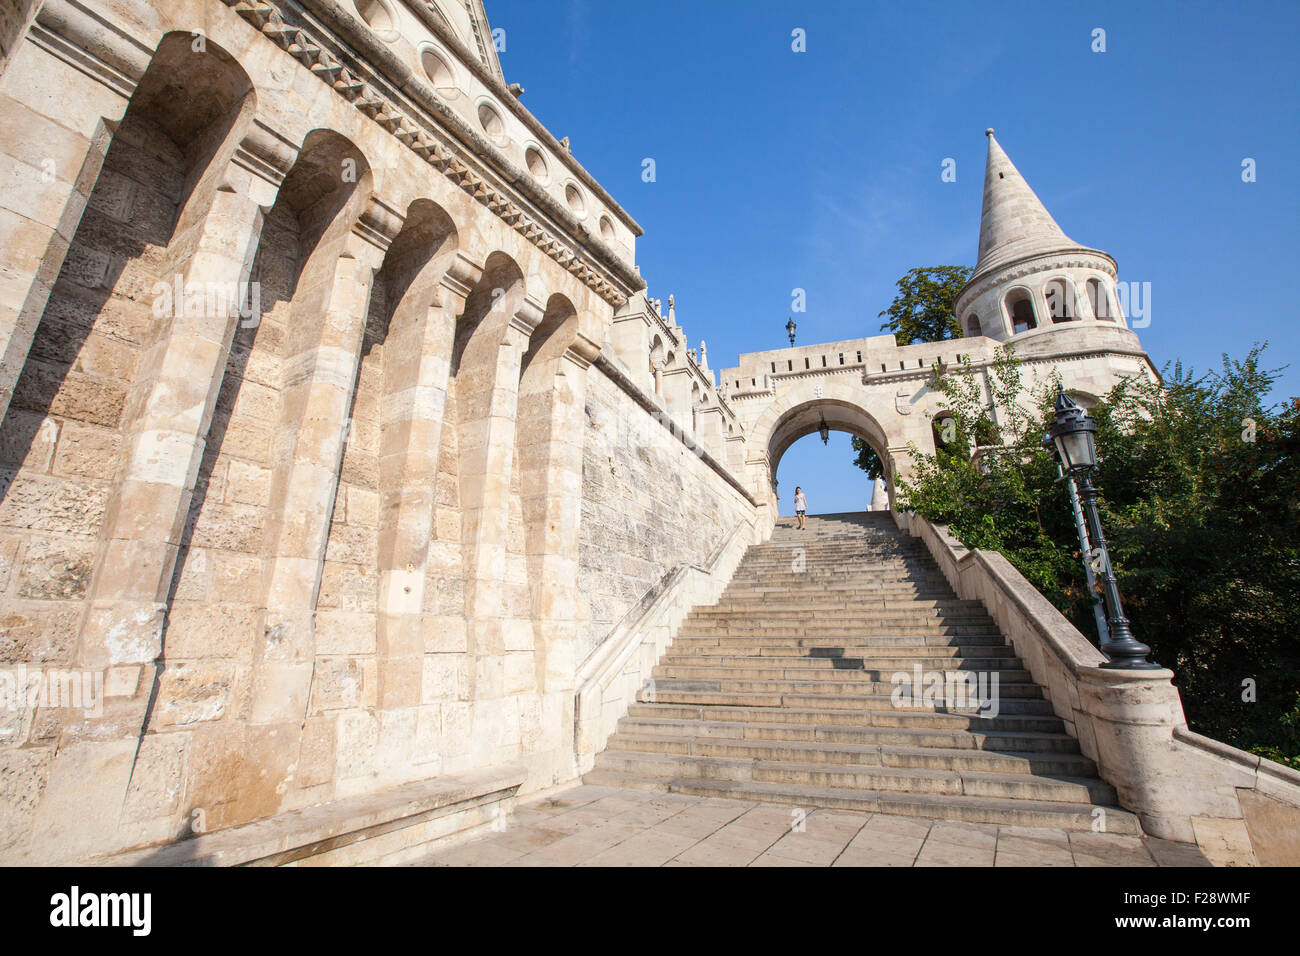 The magnificent Fisherman's Bastion in Budapest, Hungary. Stock Photo